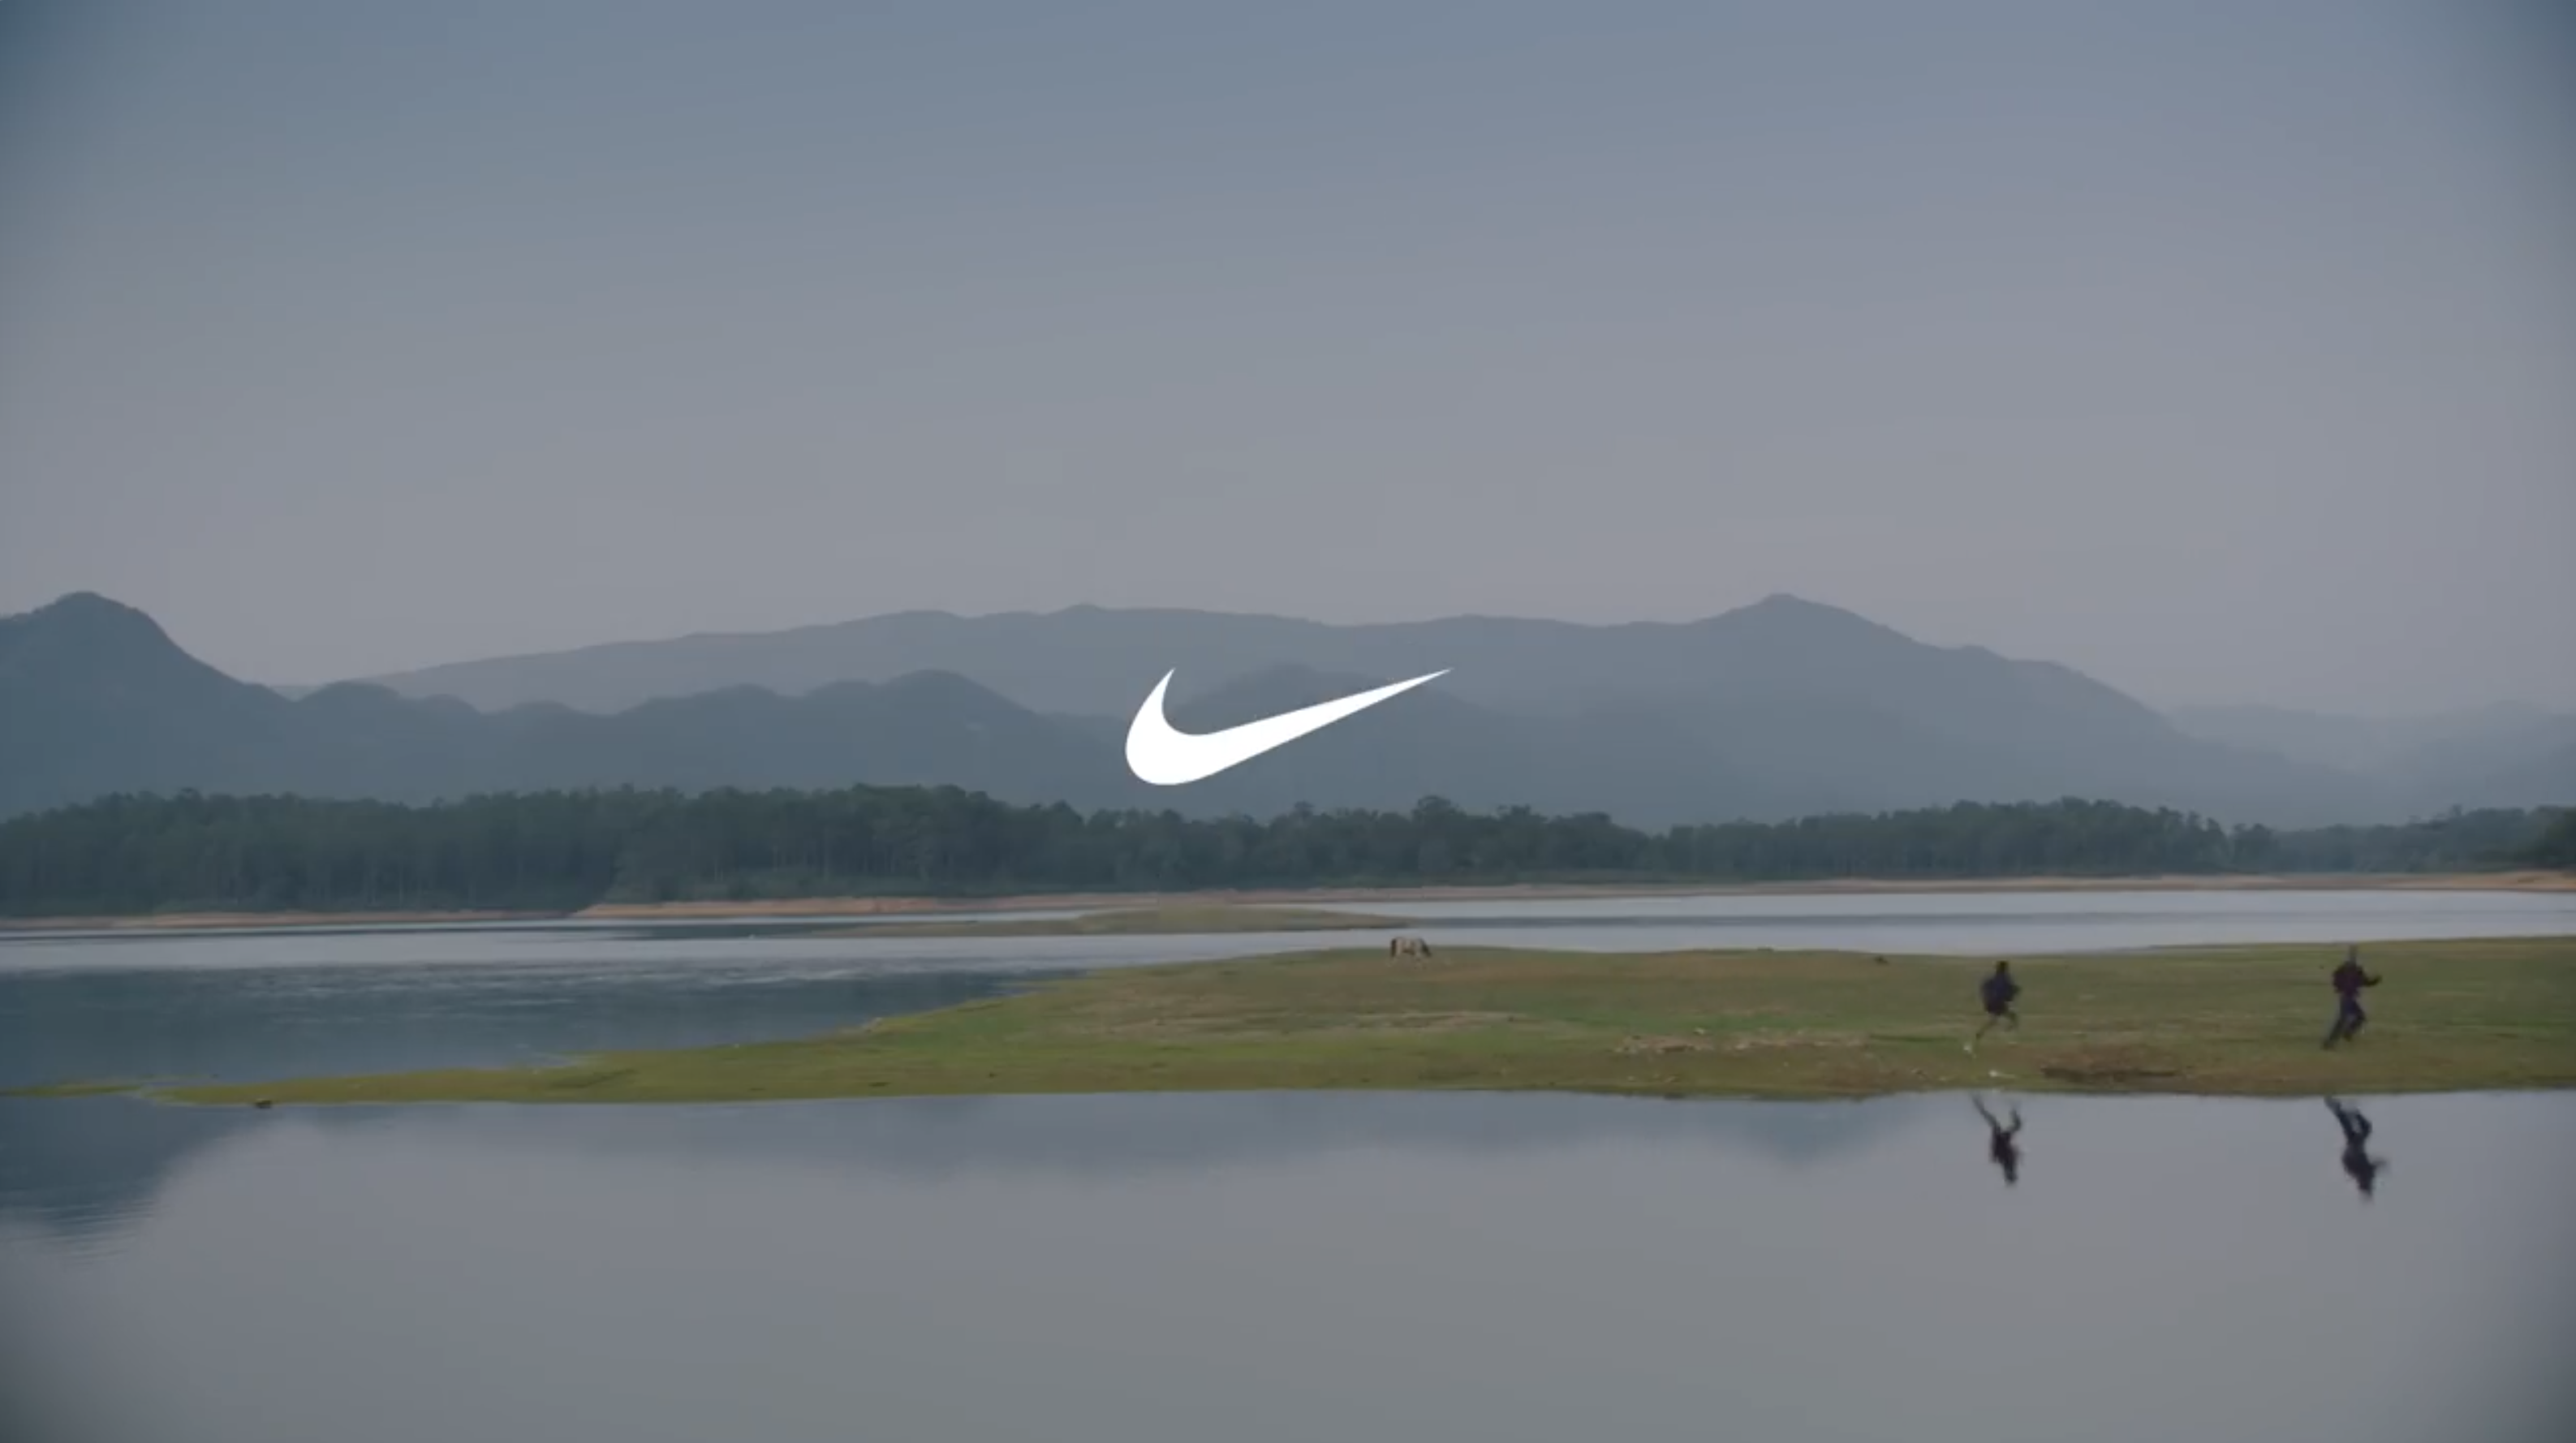 Lunar New Year: The Great Chase | Nike Spring 2020 Fashion Ad Campaign